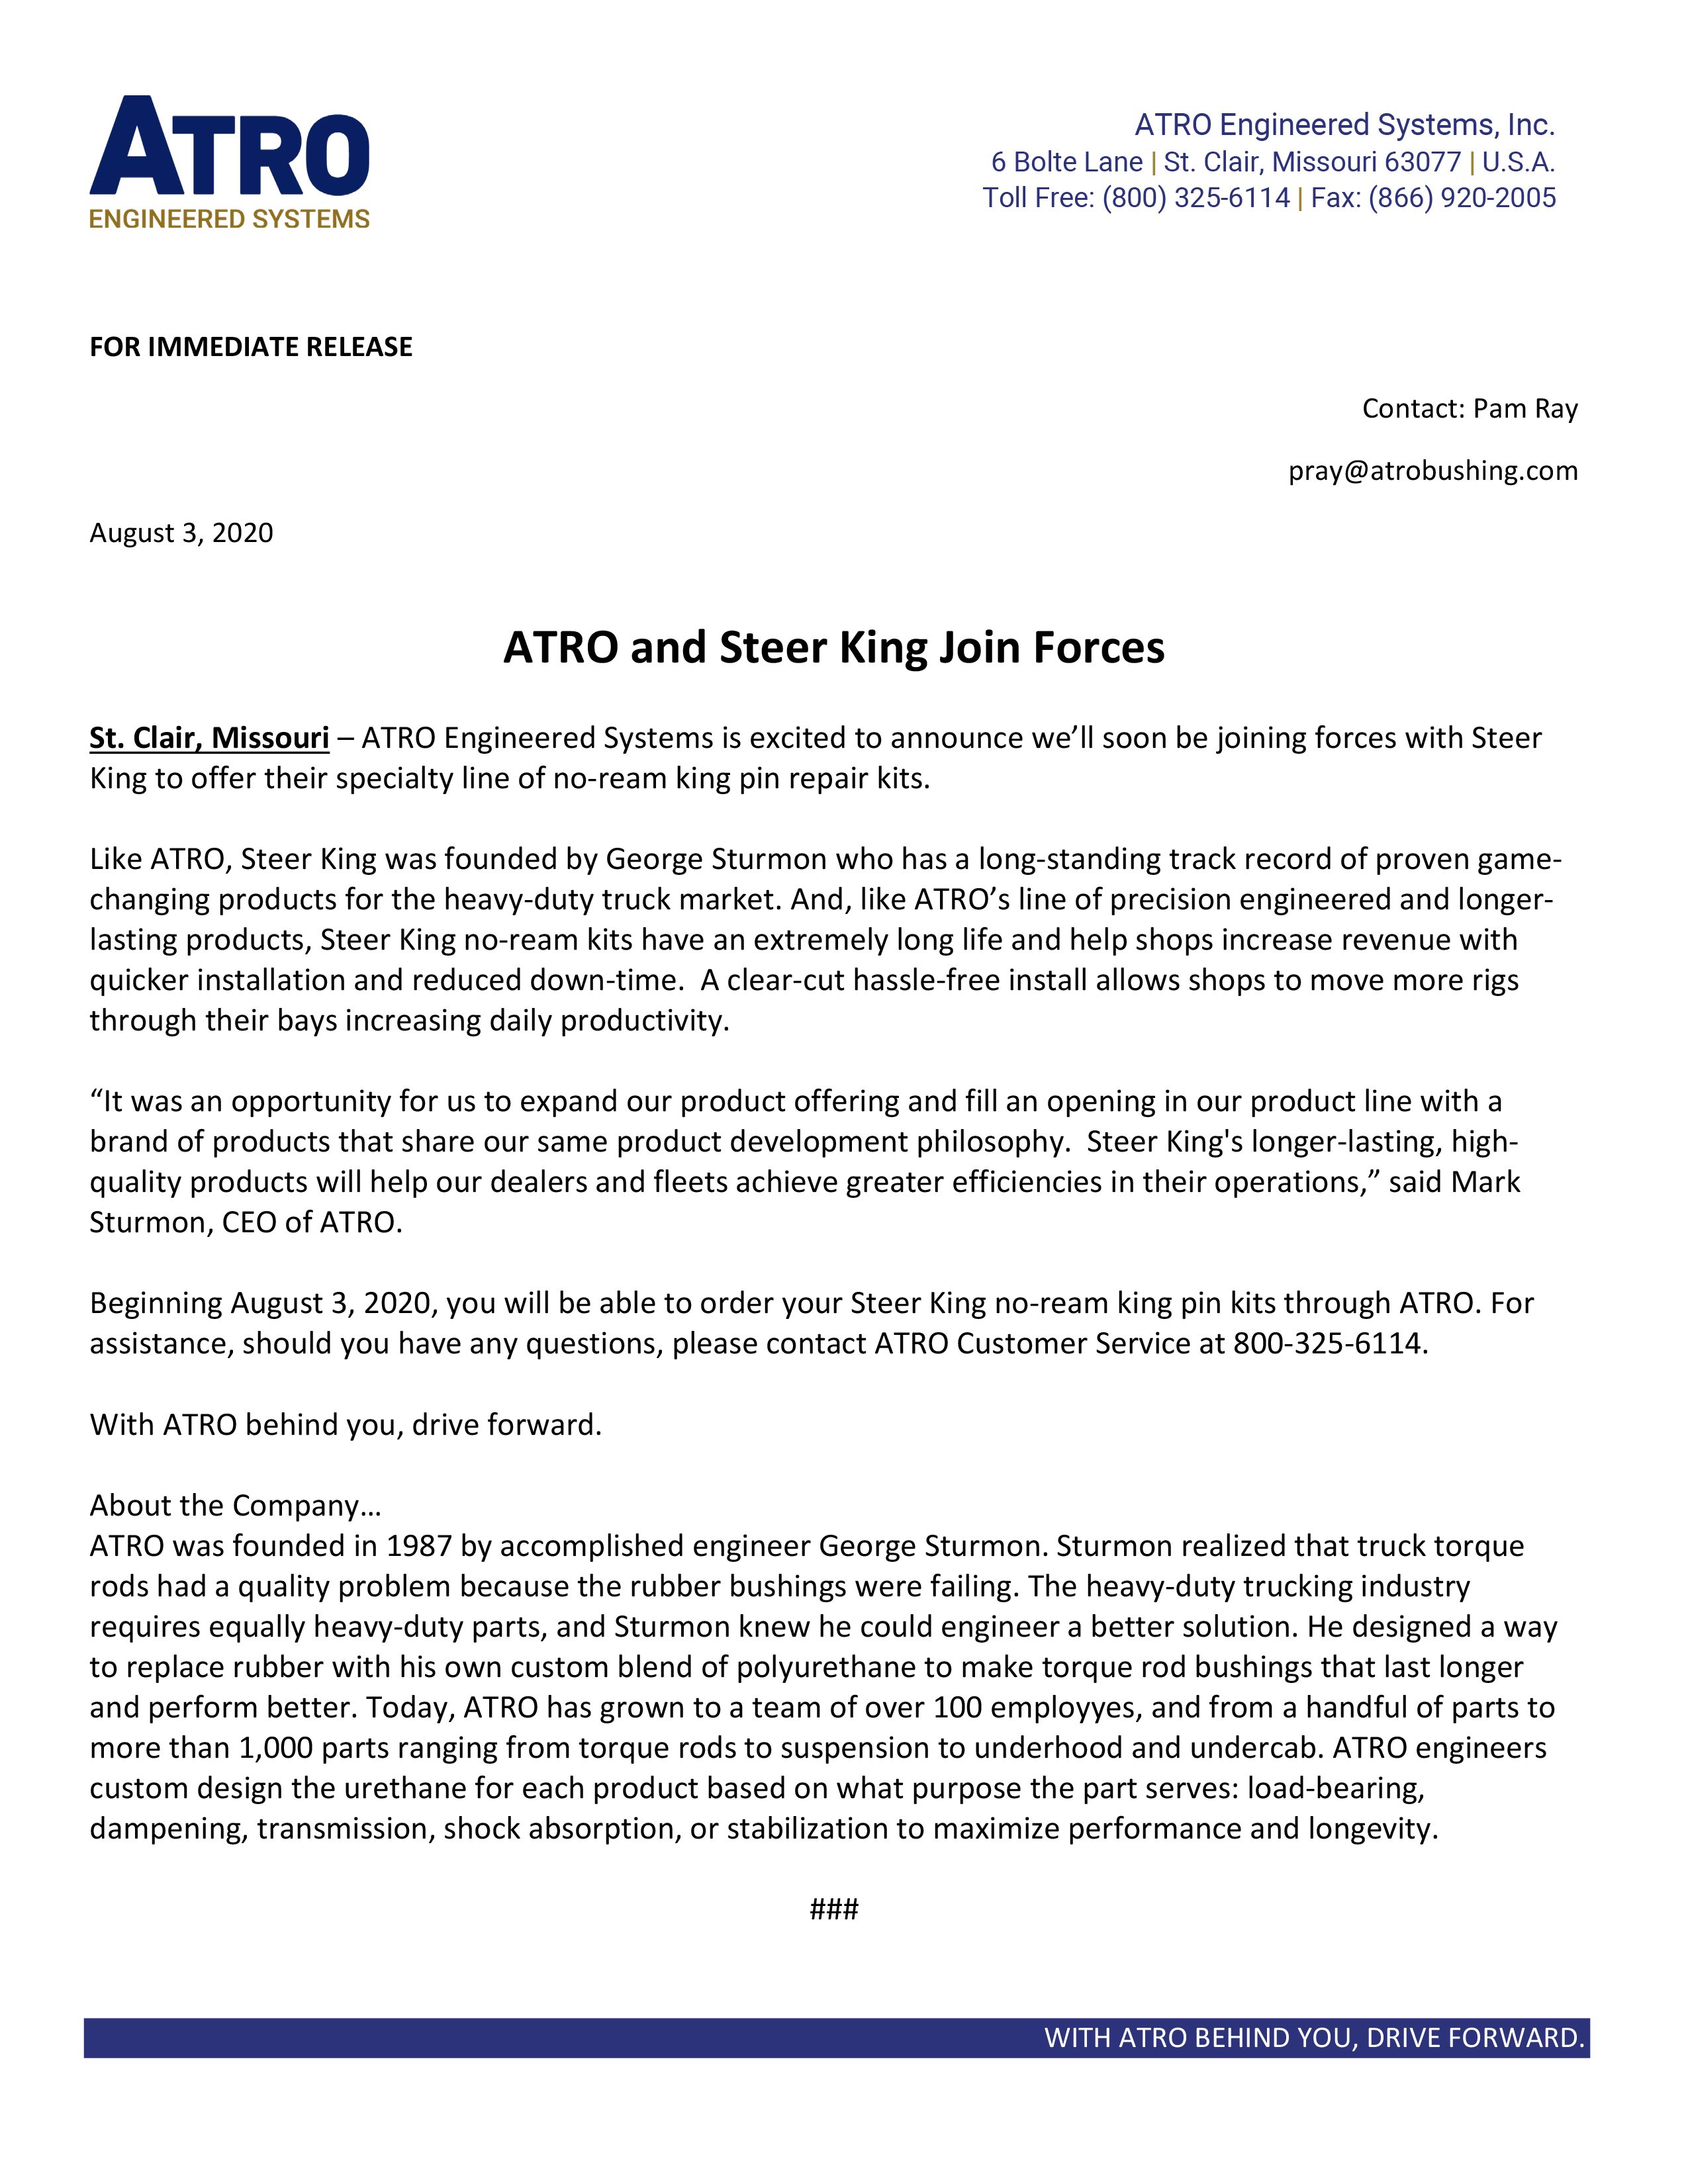 ATRO and Steer King Join Forces - Press Release August 3, 2020